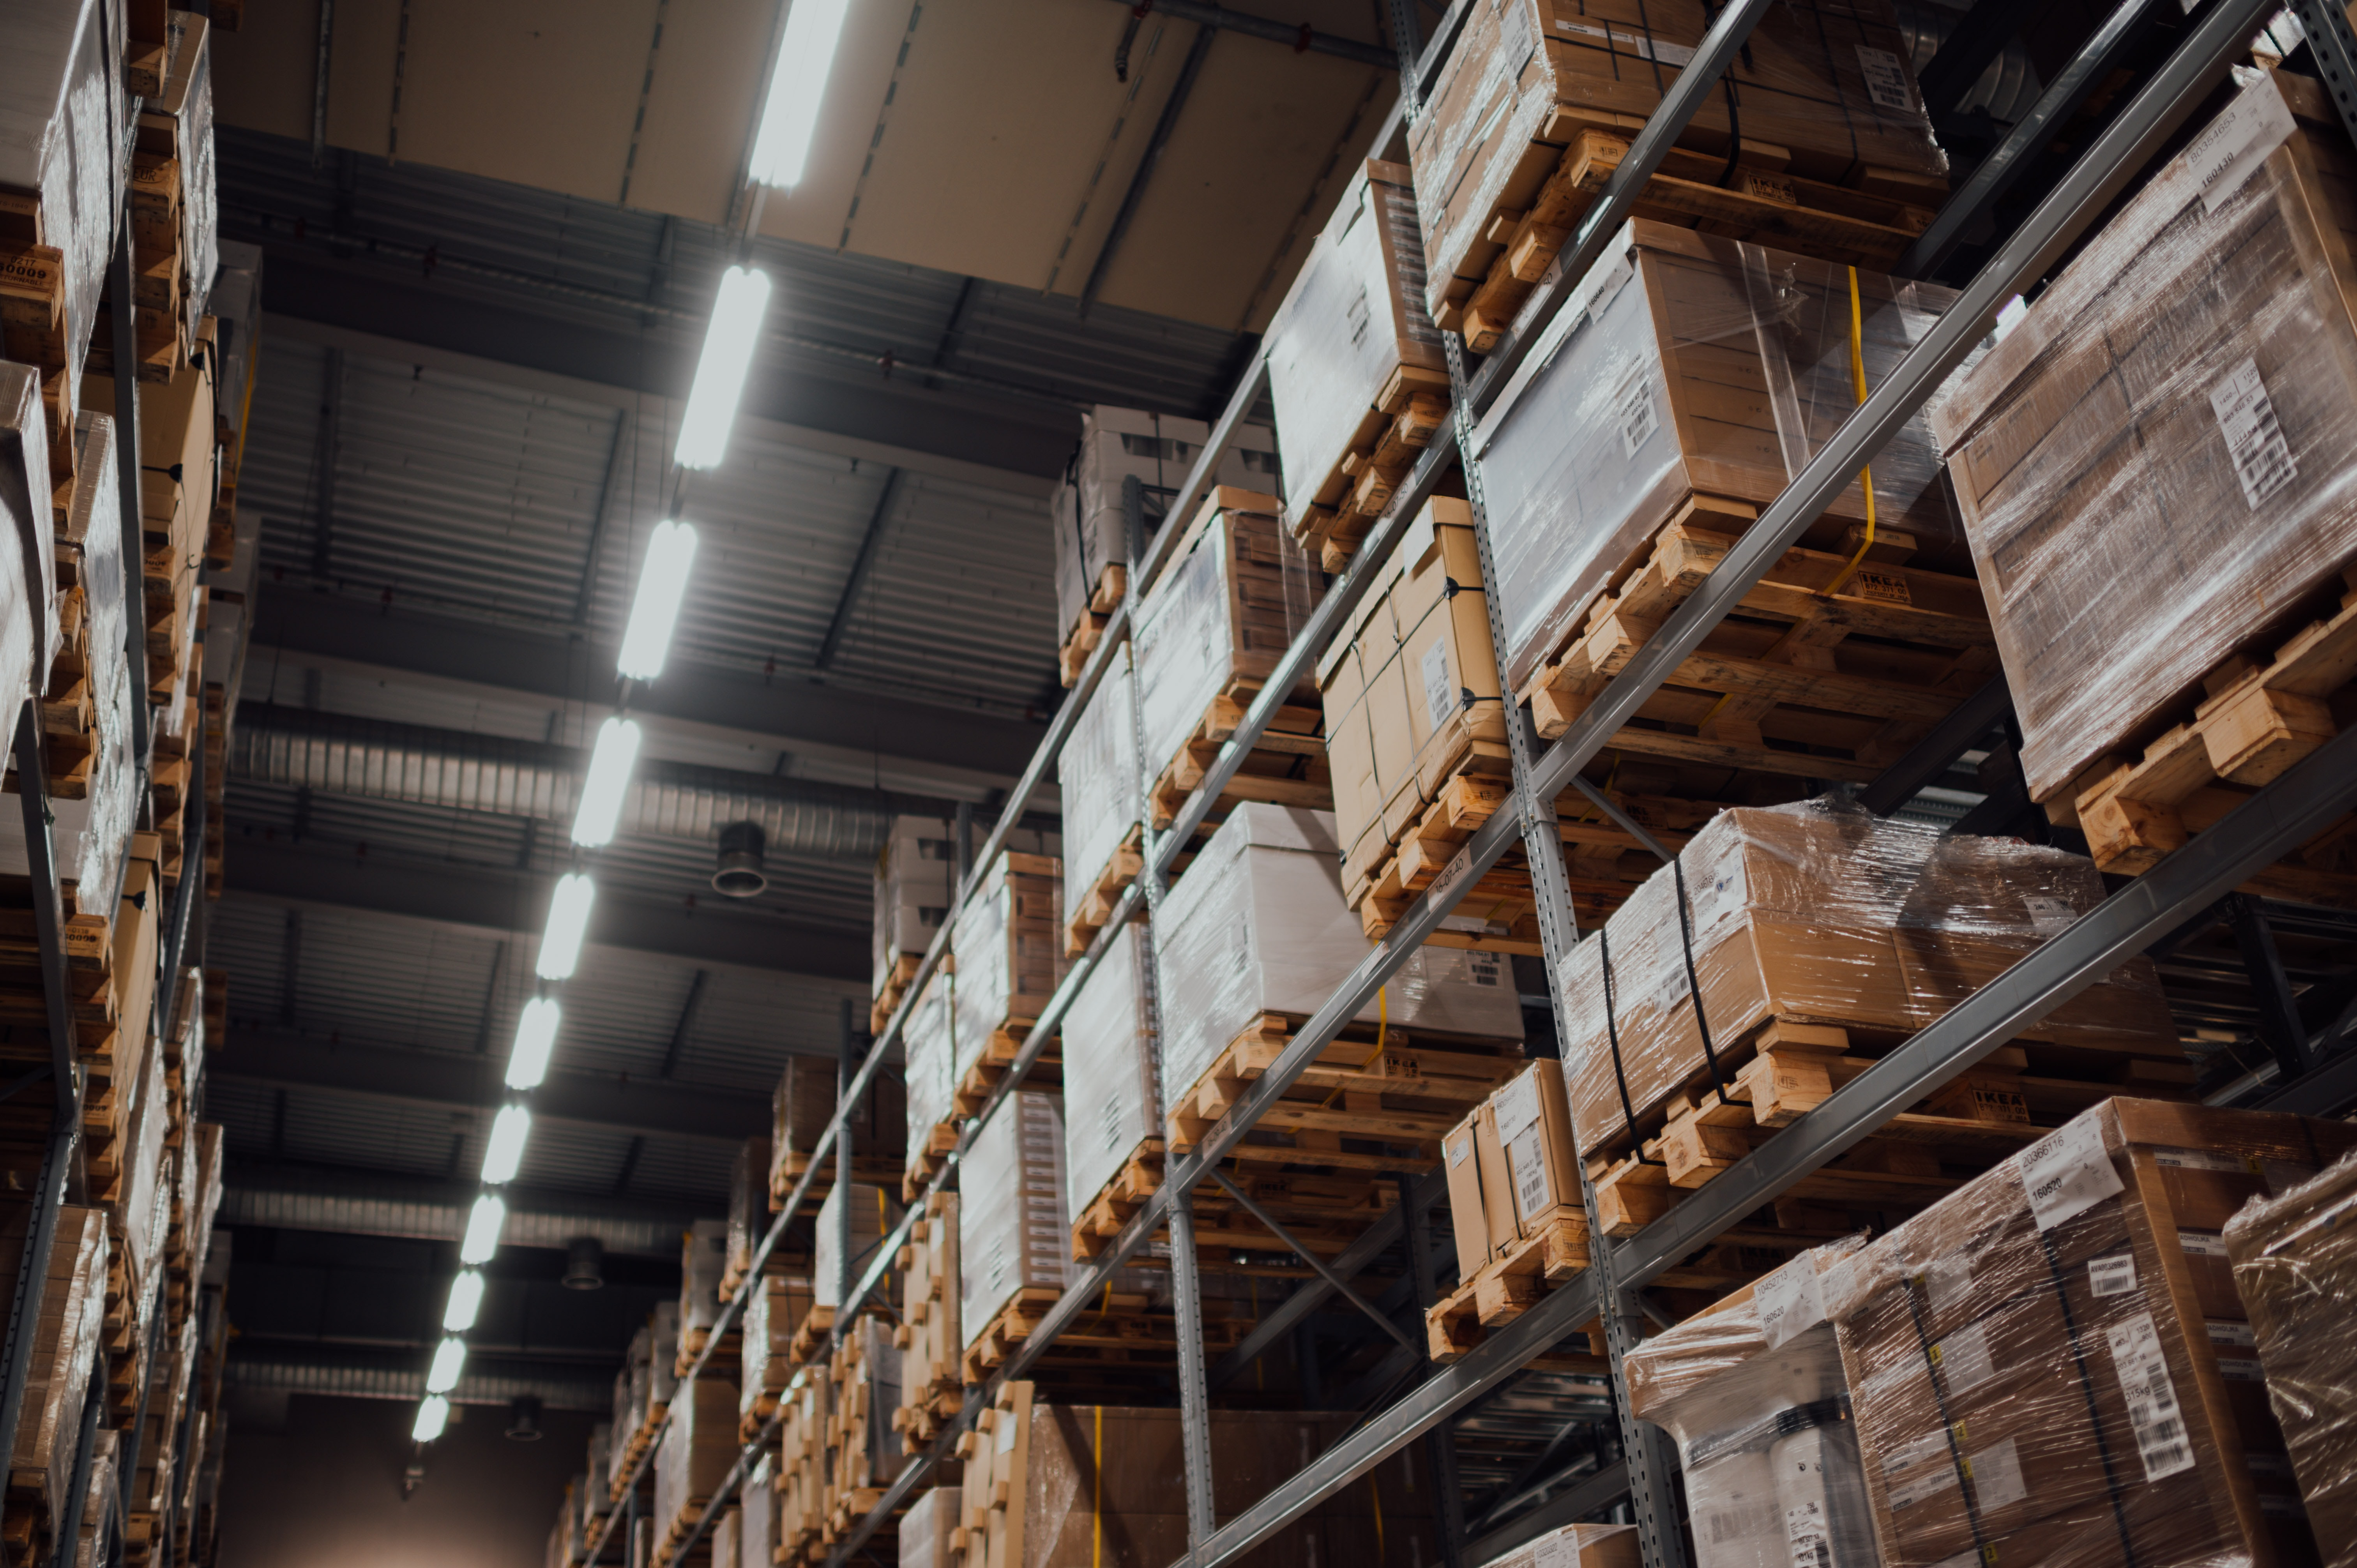 Kayteria Knott's Reveals Top Tips for Reducing Environmental Impact in Logistics